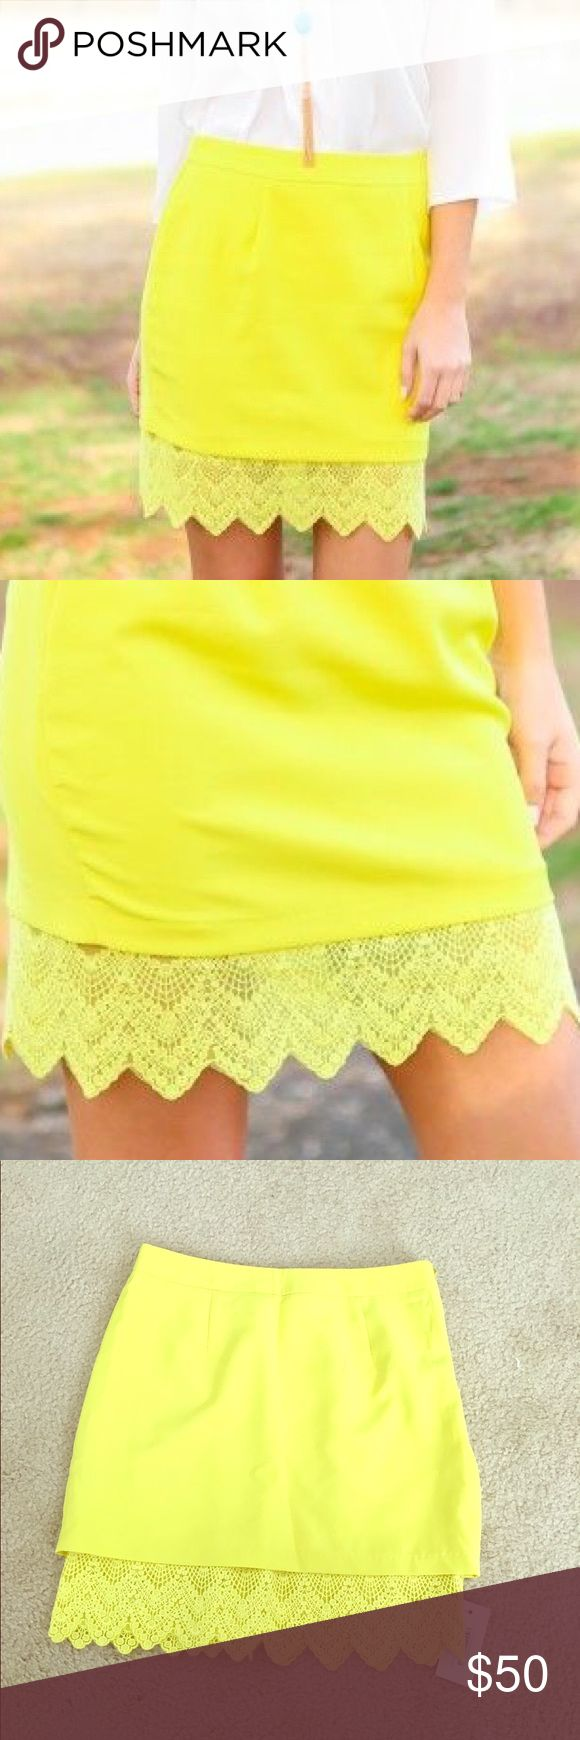 Yellow Lace Hem Skirt Size medium. Brand new with tags. Price is firm!  Stunning lemon colored skirt with lace hemline! Perfect for work or play! Skirts Pencil